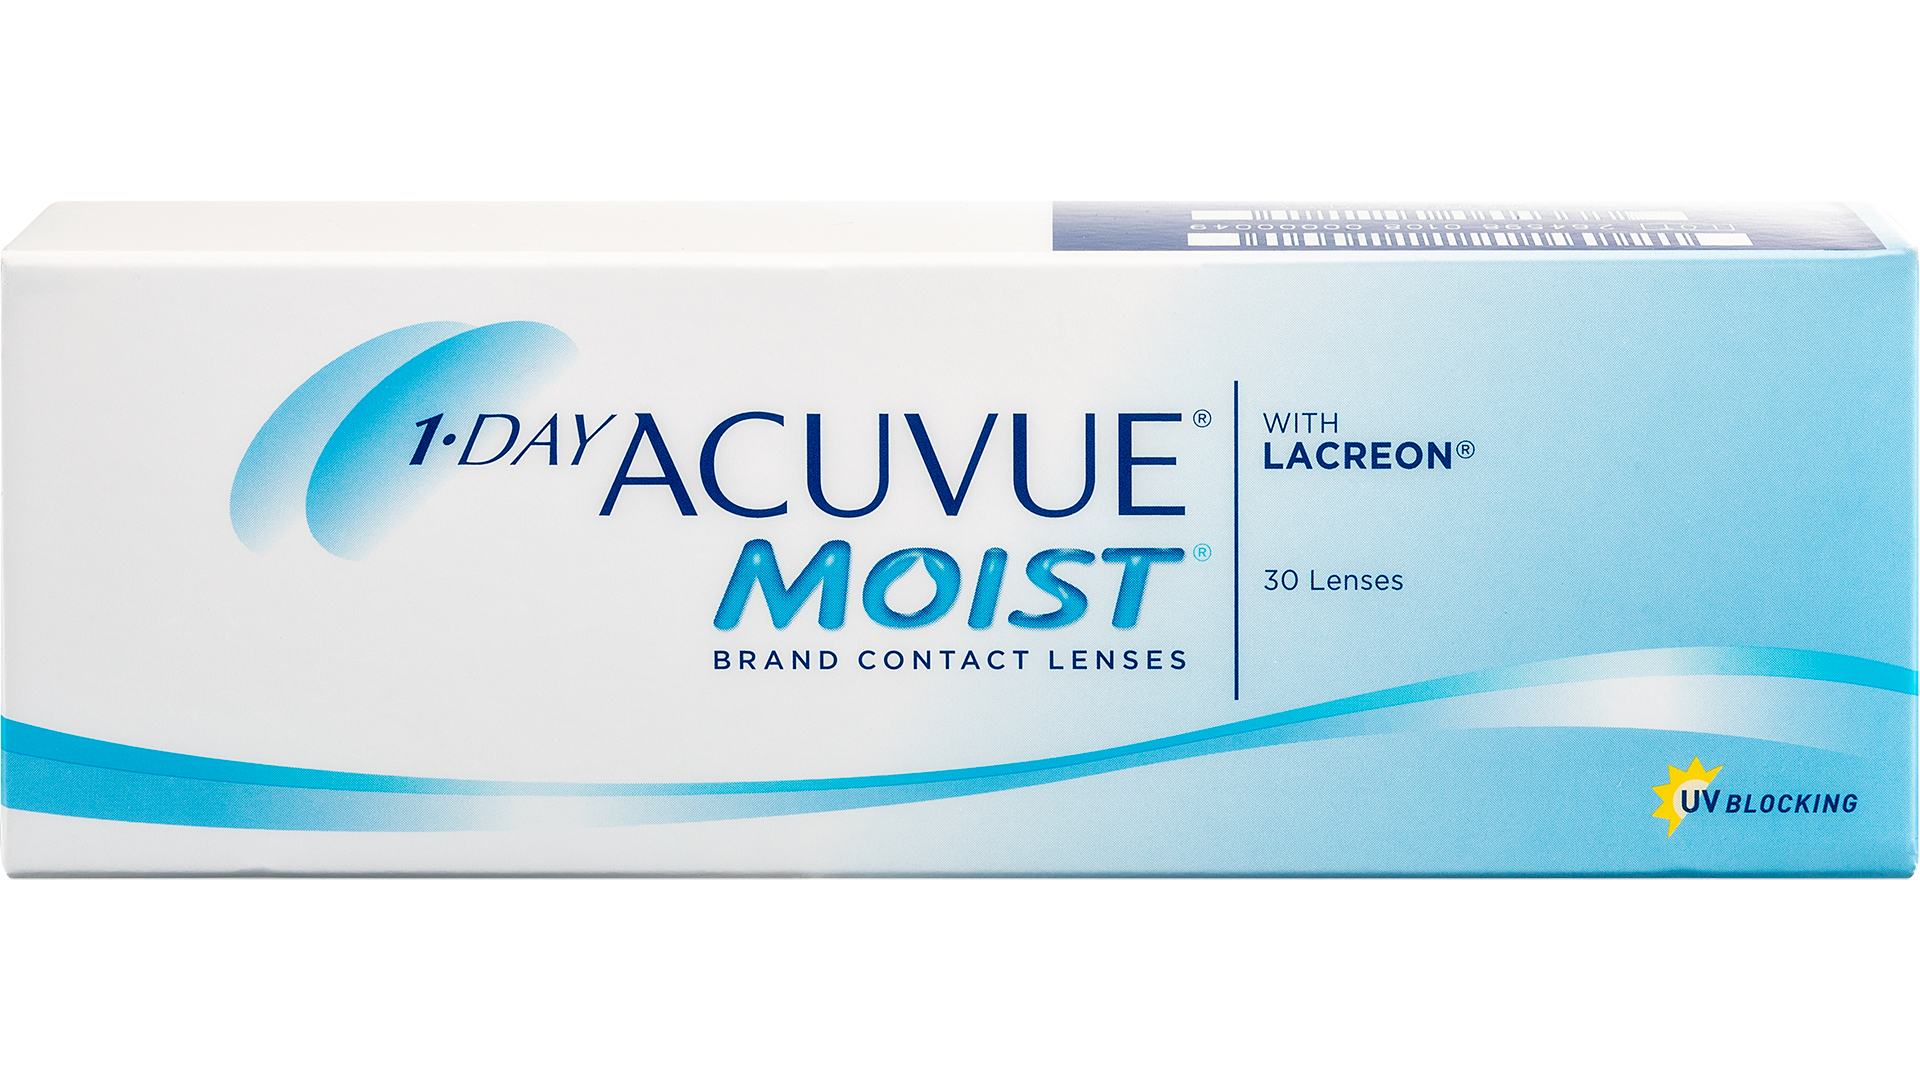 Front 1-Day Acuvue Moist